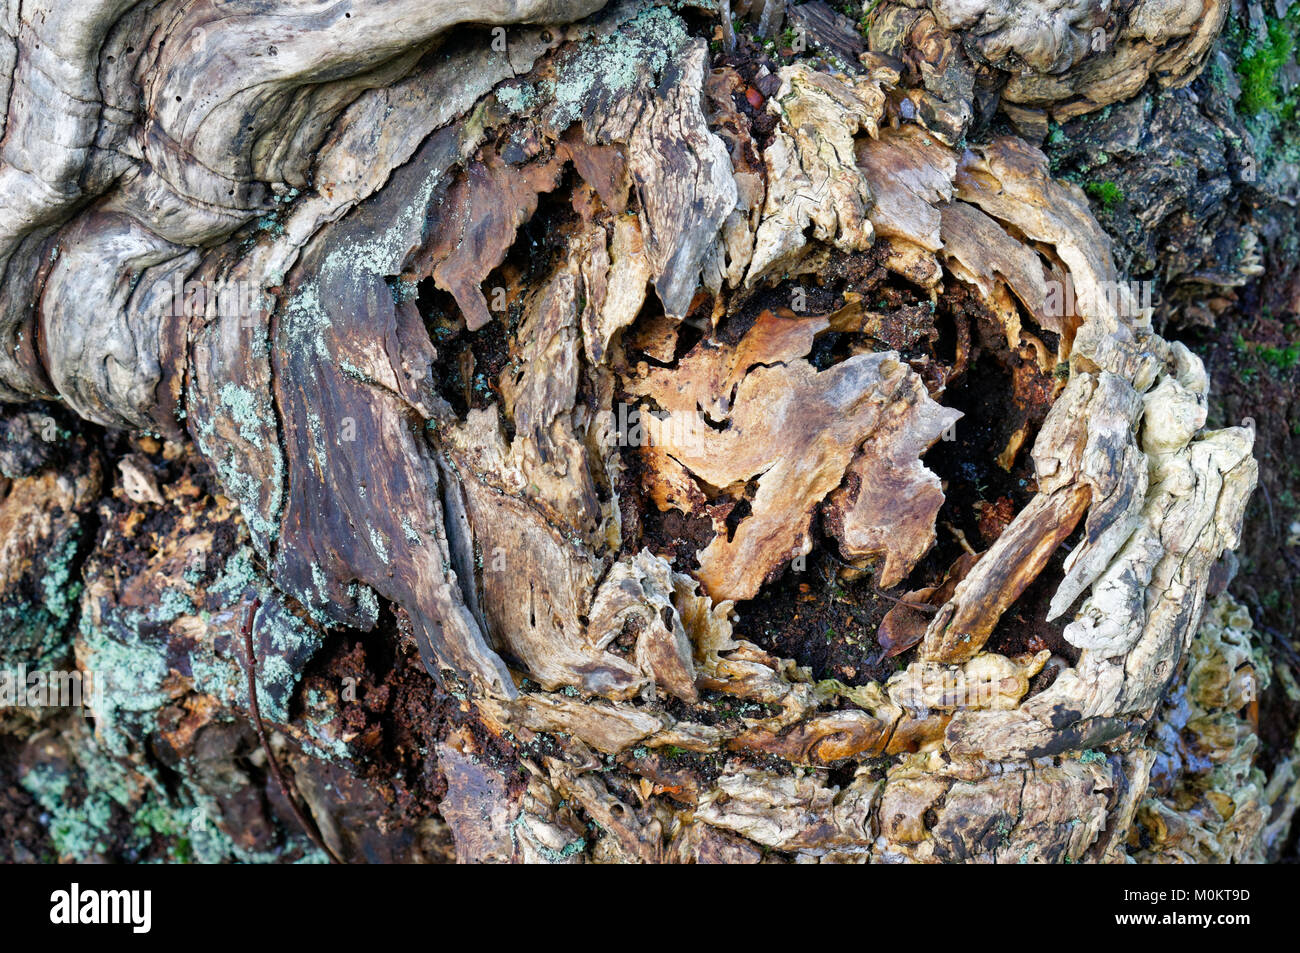 Close-up of natural patterns in a rotting tree trunk, Vancouver, BC, Canada - Stock Image